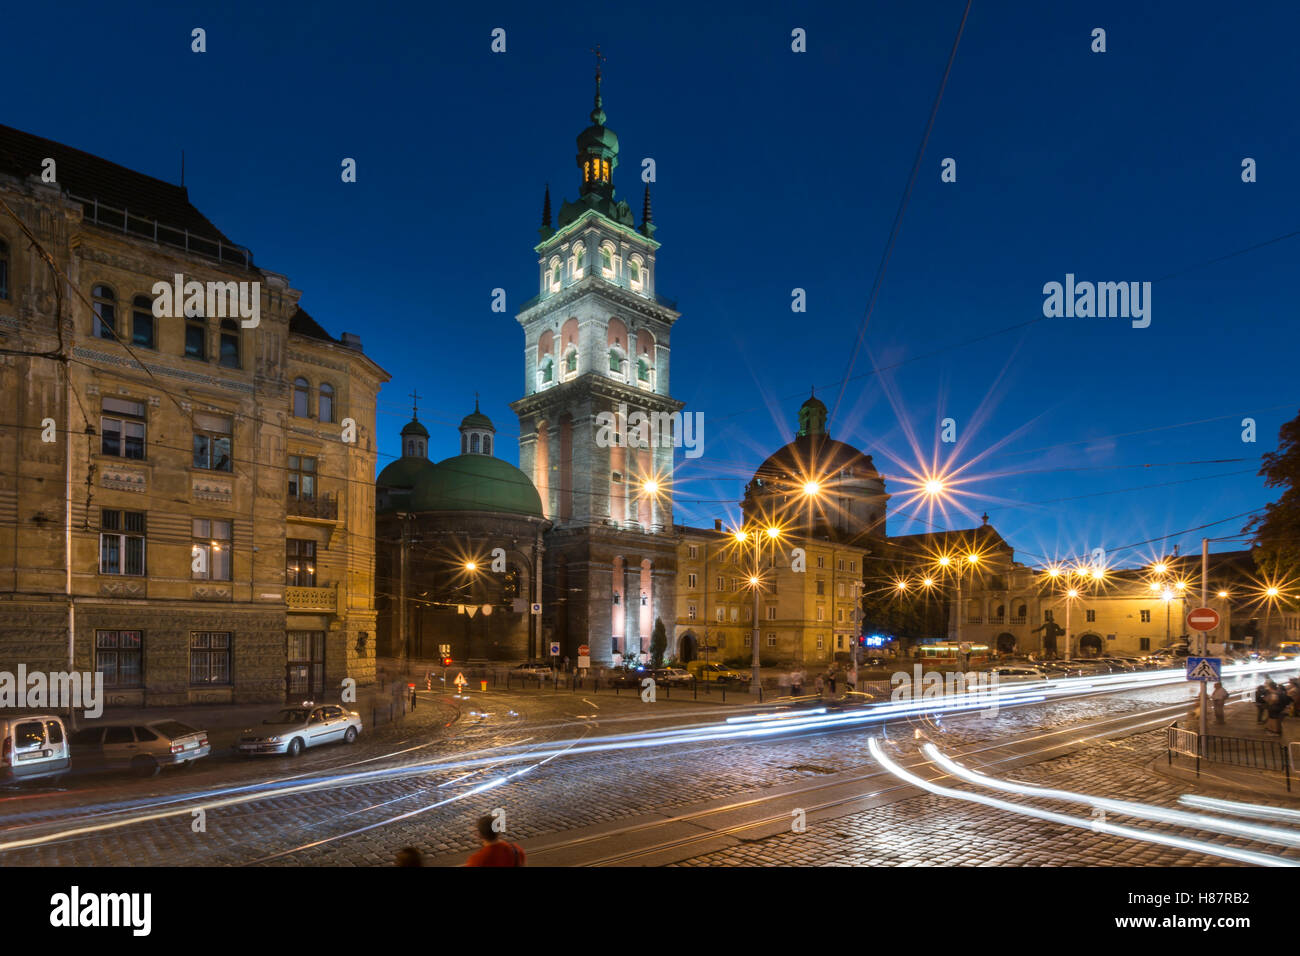 View of Old Town and the Virgin Mary's Assumption Church Bell Tower at blue hour in Lviv,Ukraine - Stock Image